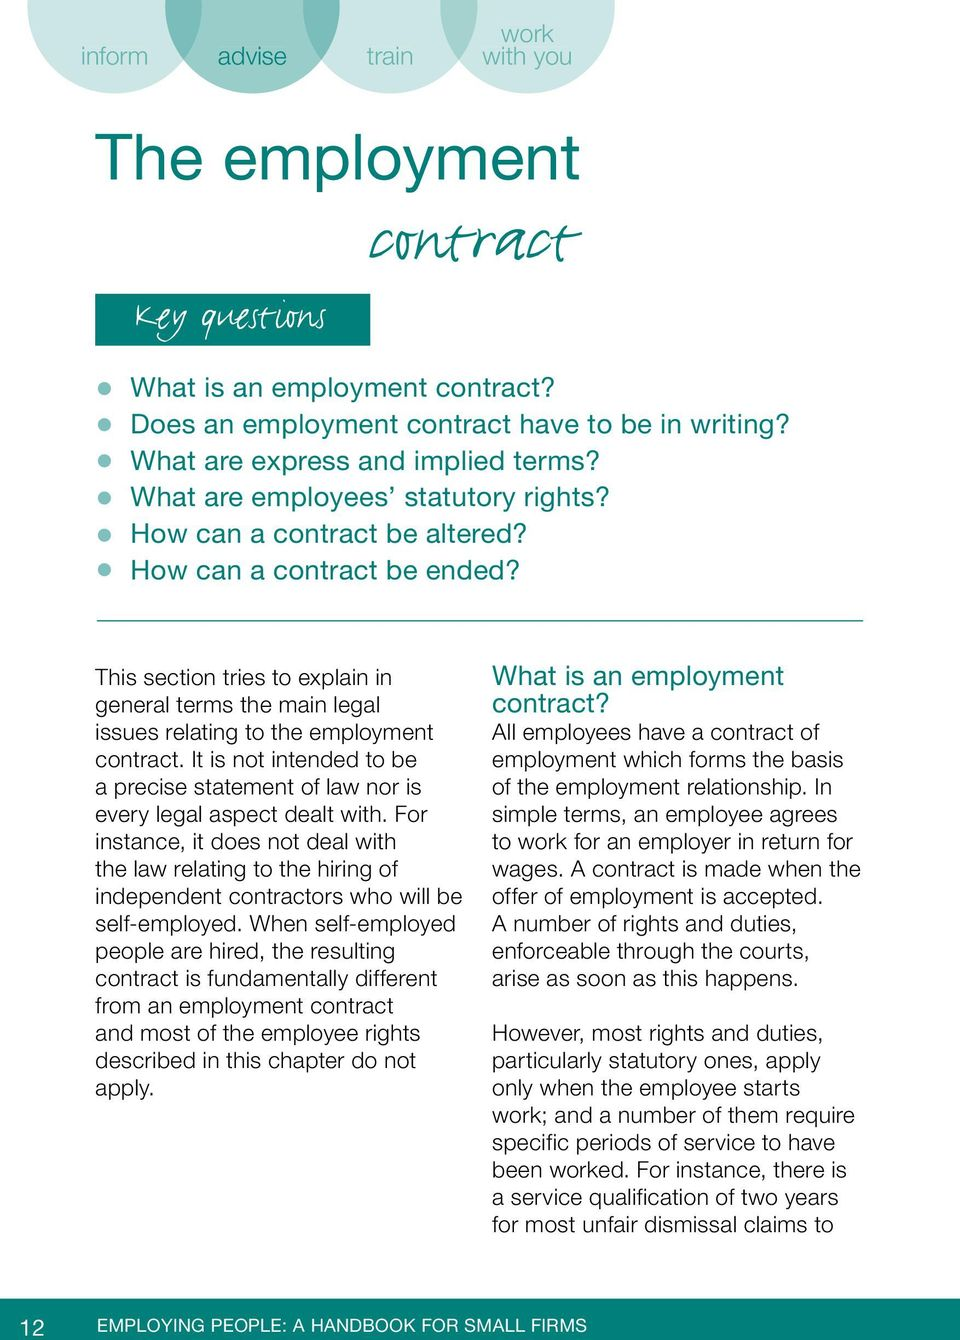 This section tries to explain in general terms the main legal issues relating to the employment contract. It is not intended to be a precise statement of law nor is every legal aspect dealt with.